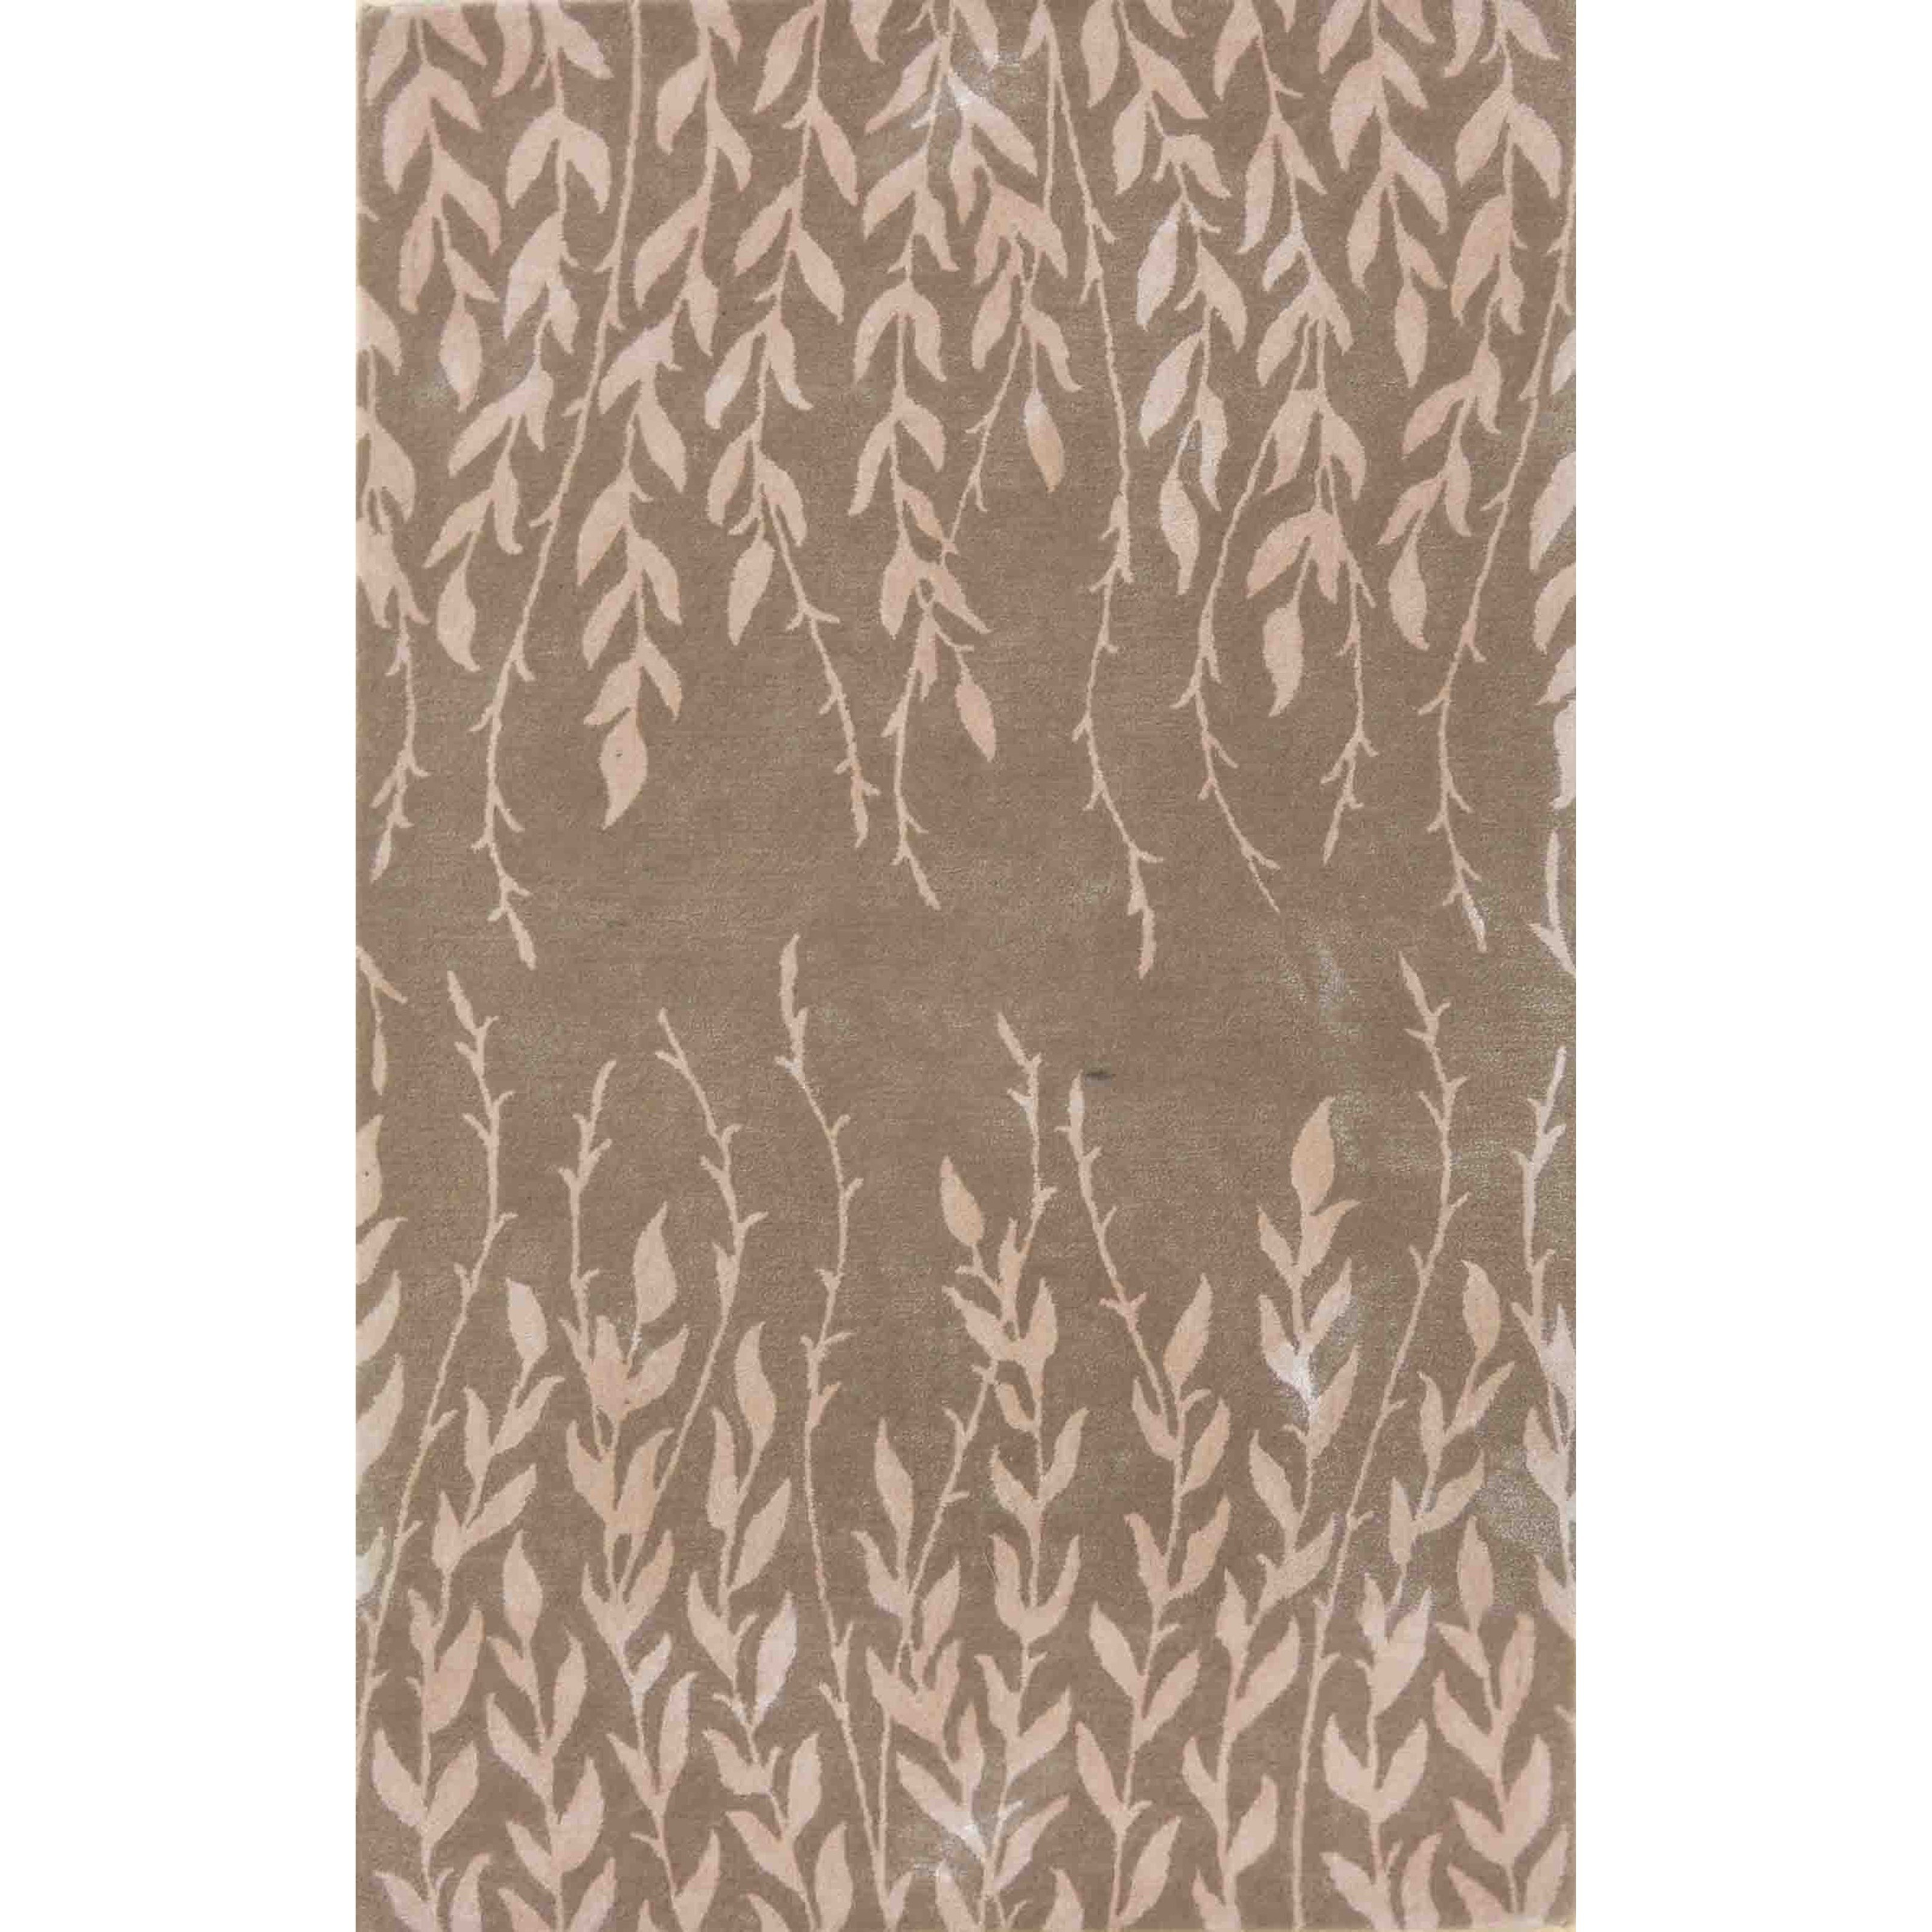 Bob Mackie Home 5' X 8' Beige Tranquility Area Rug by Kas at Zak's Home